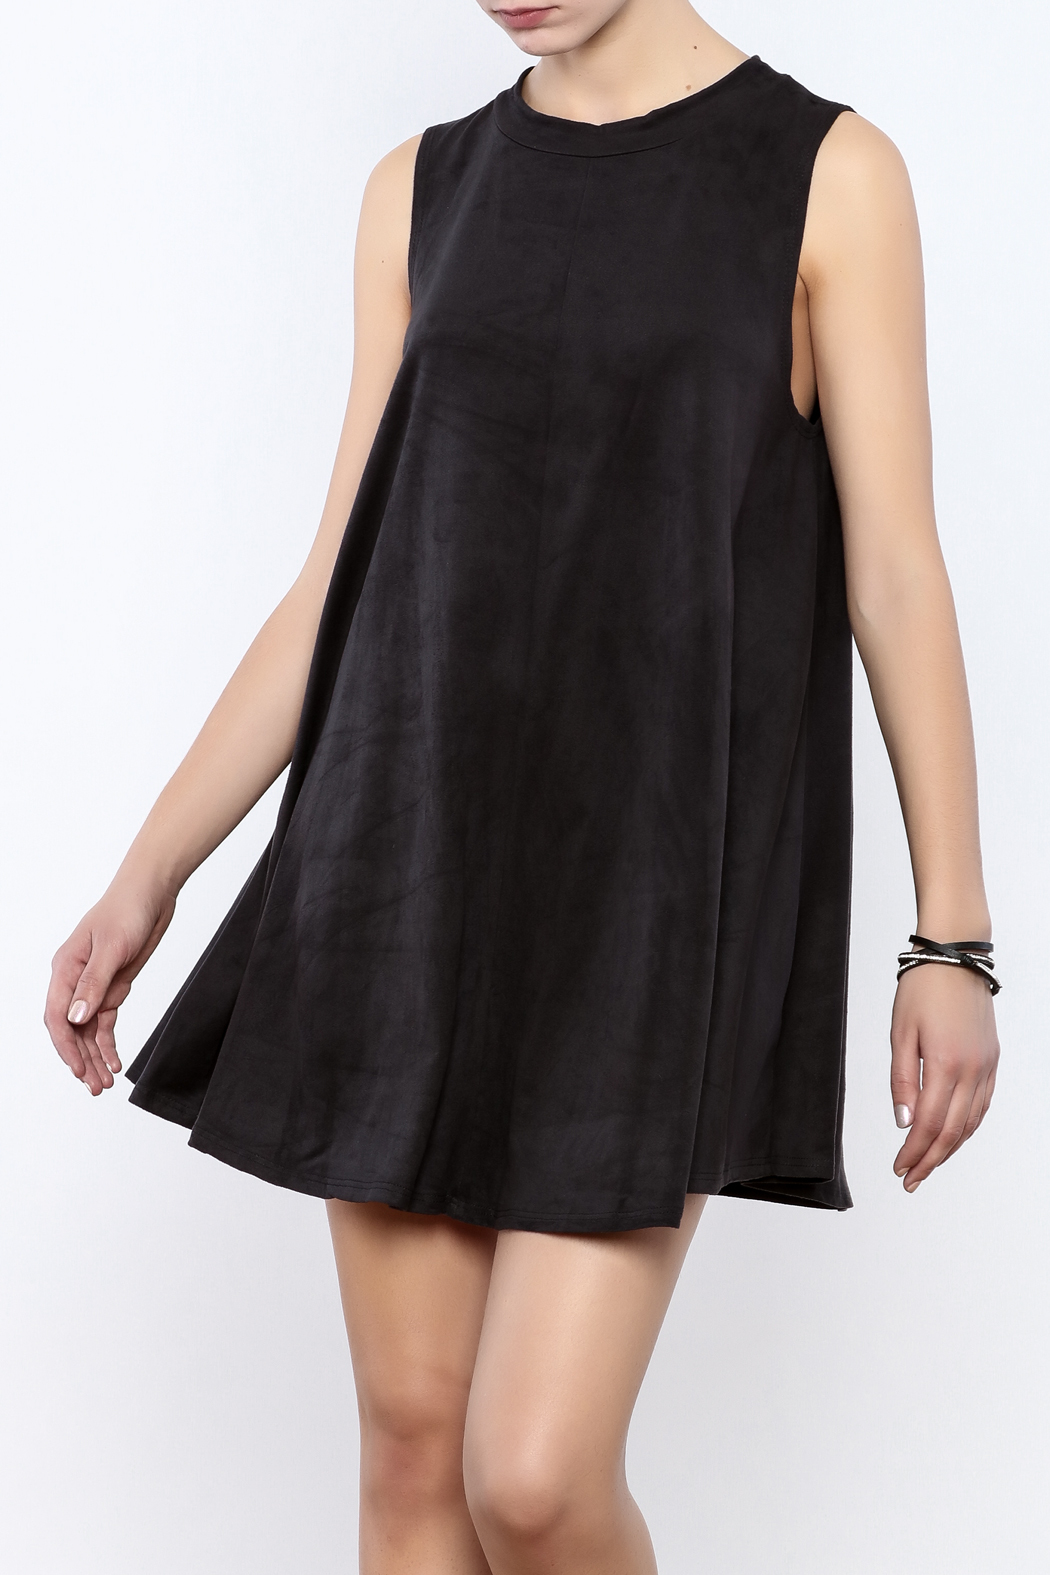 Coveted Clothing Faux Suede Tank Dress - Front Cropped Image